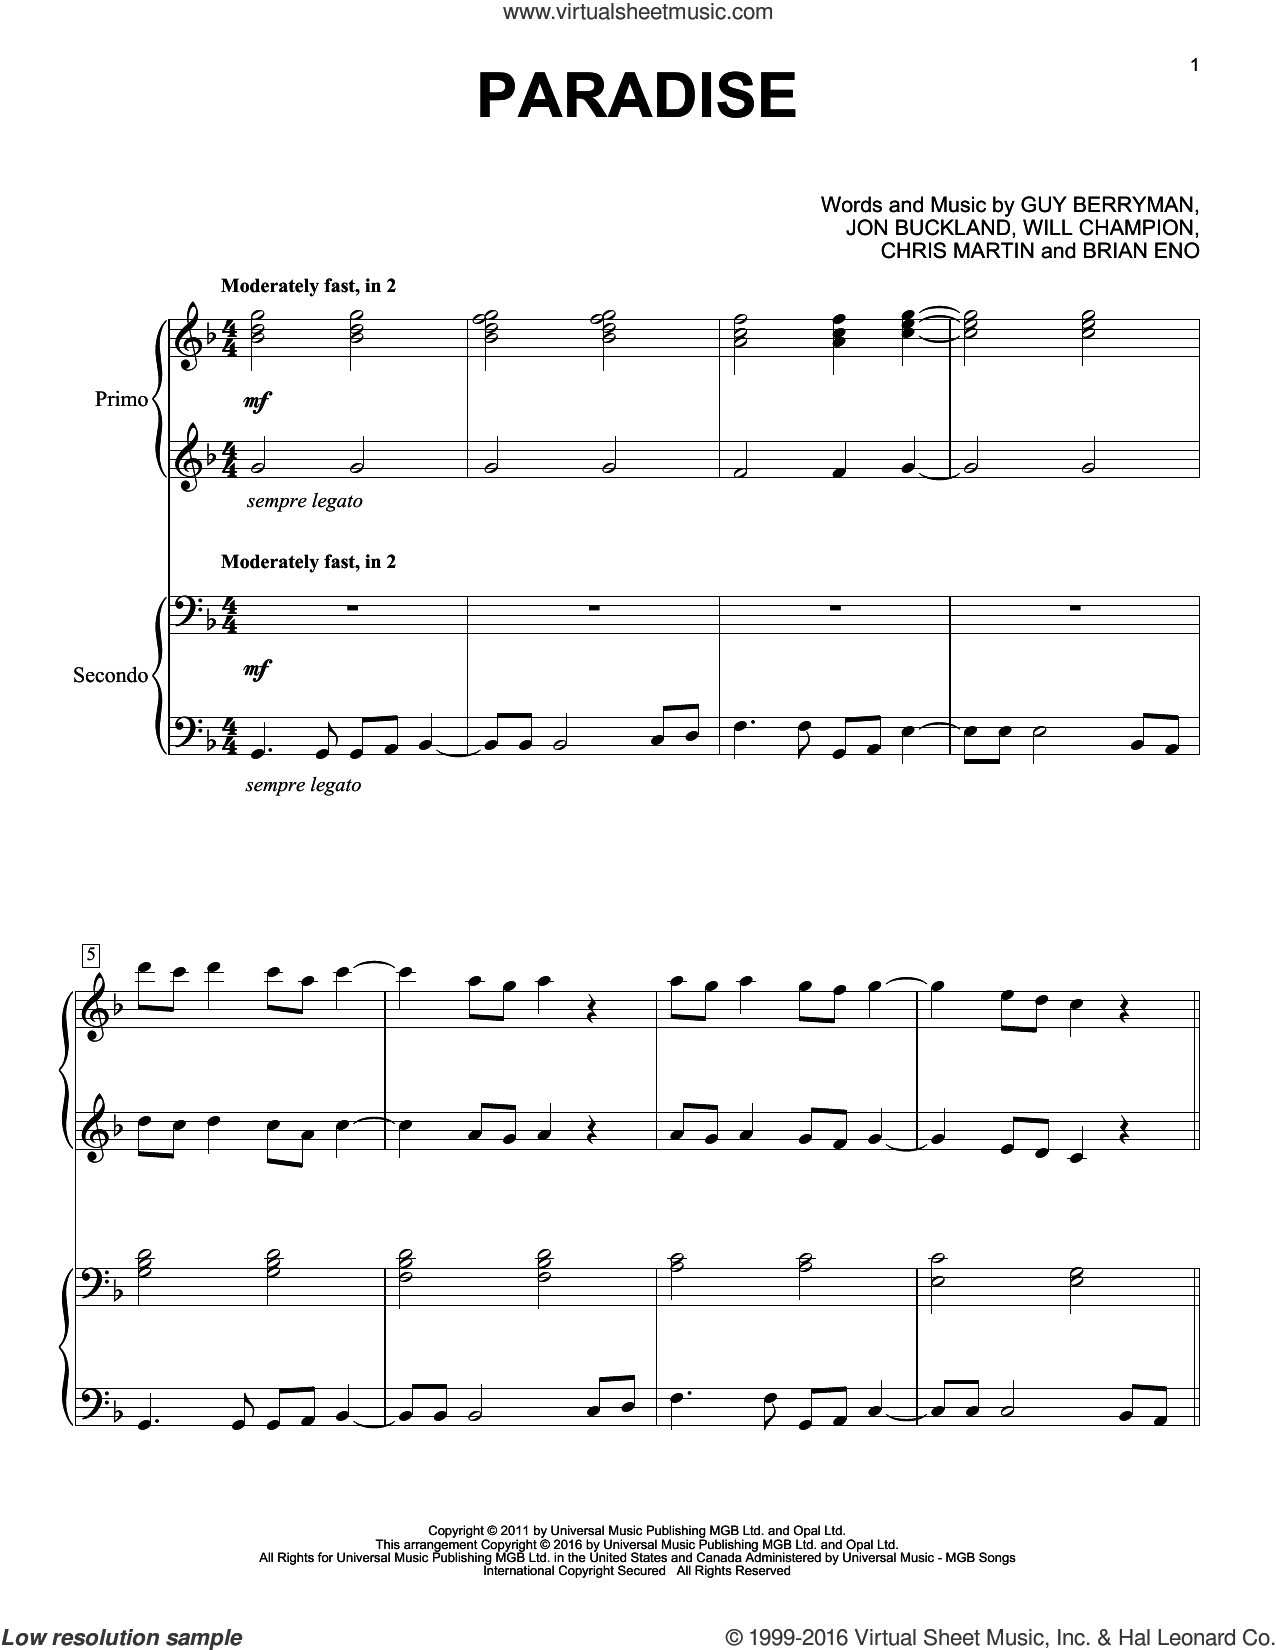 Paradise sheet music for piano four hands by Chris Martin, Coldplay, Brian Eno, Guy Berryman, Jon Buckland and Will Champion, intermediate skill level